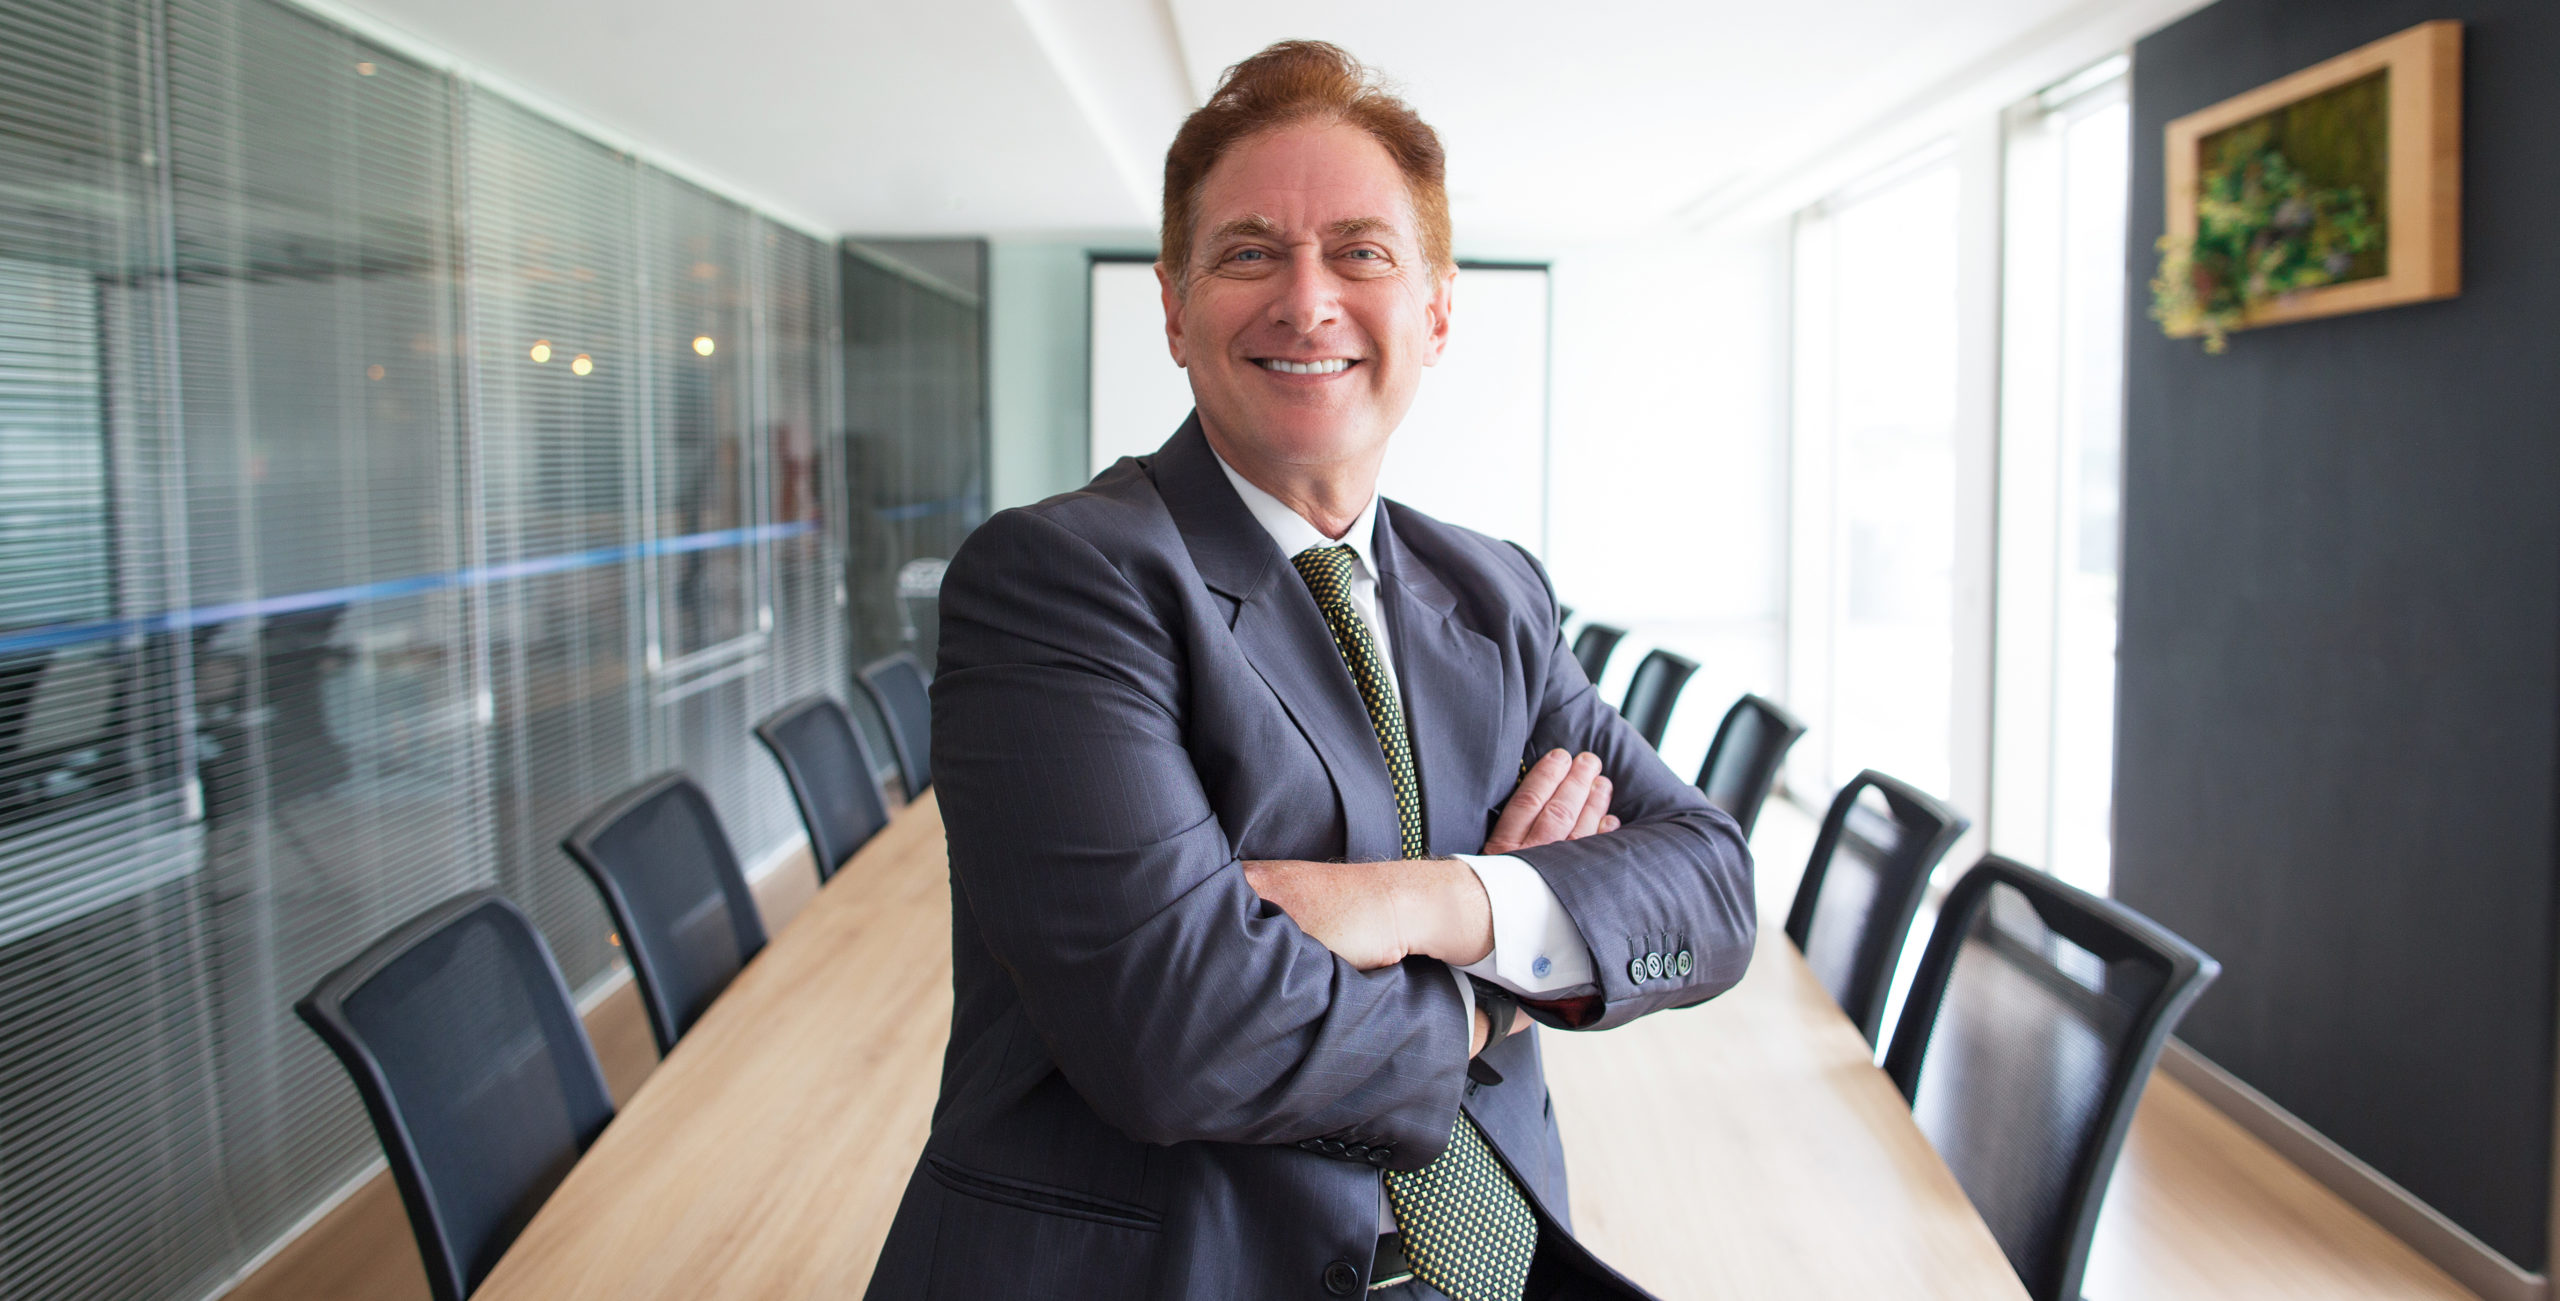 Proud middle-aged man in a suit sitting at the head of a conference table